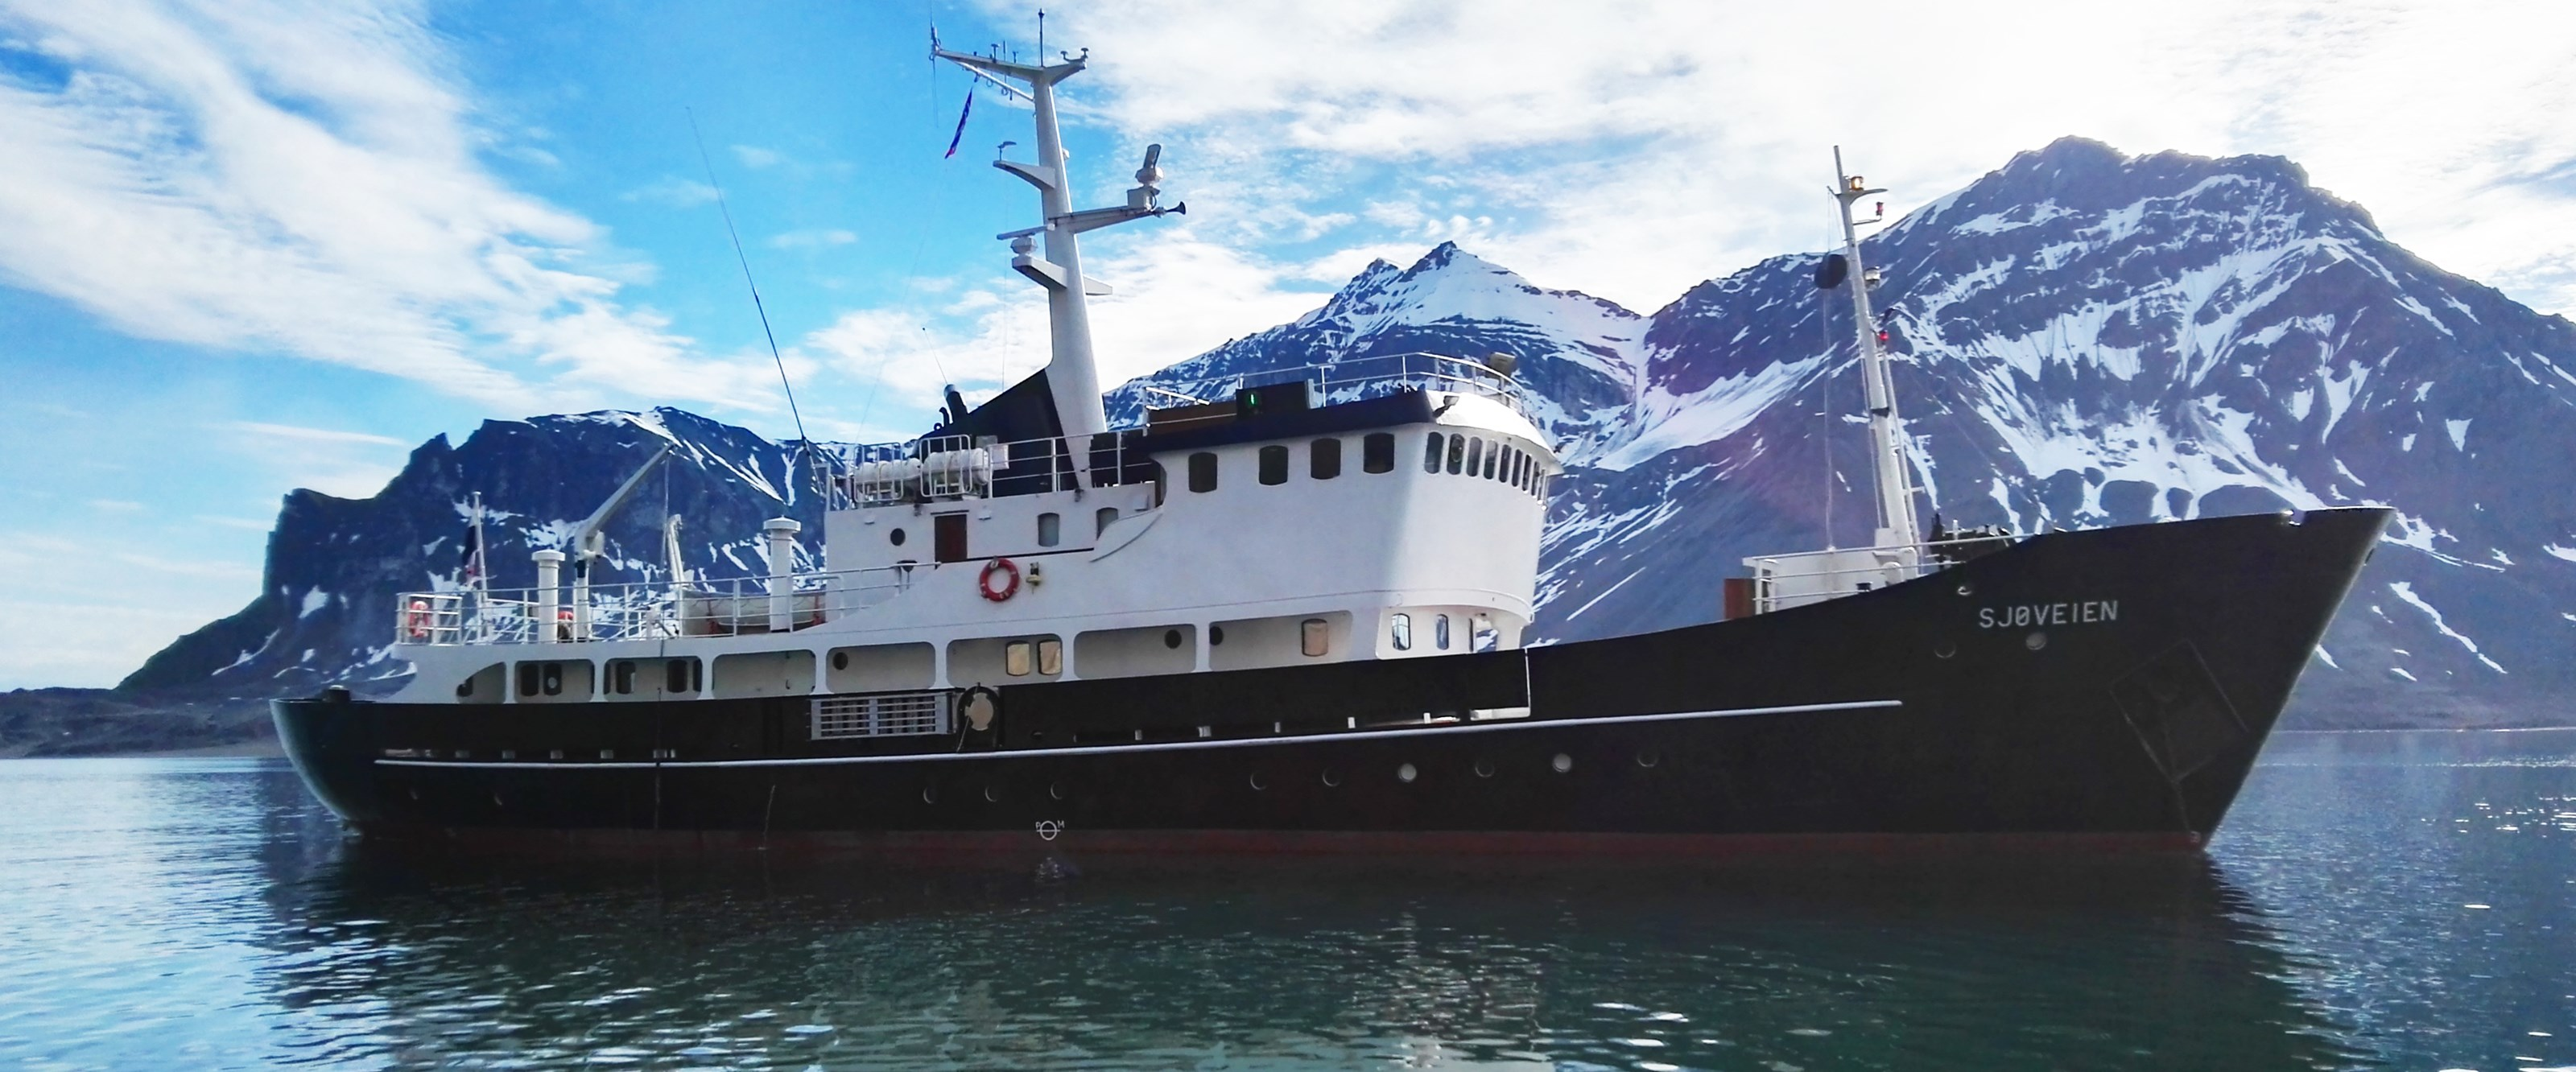 Expedition Svalbard (Sjoveien)